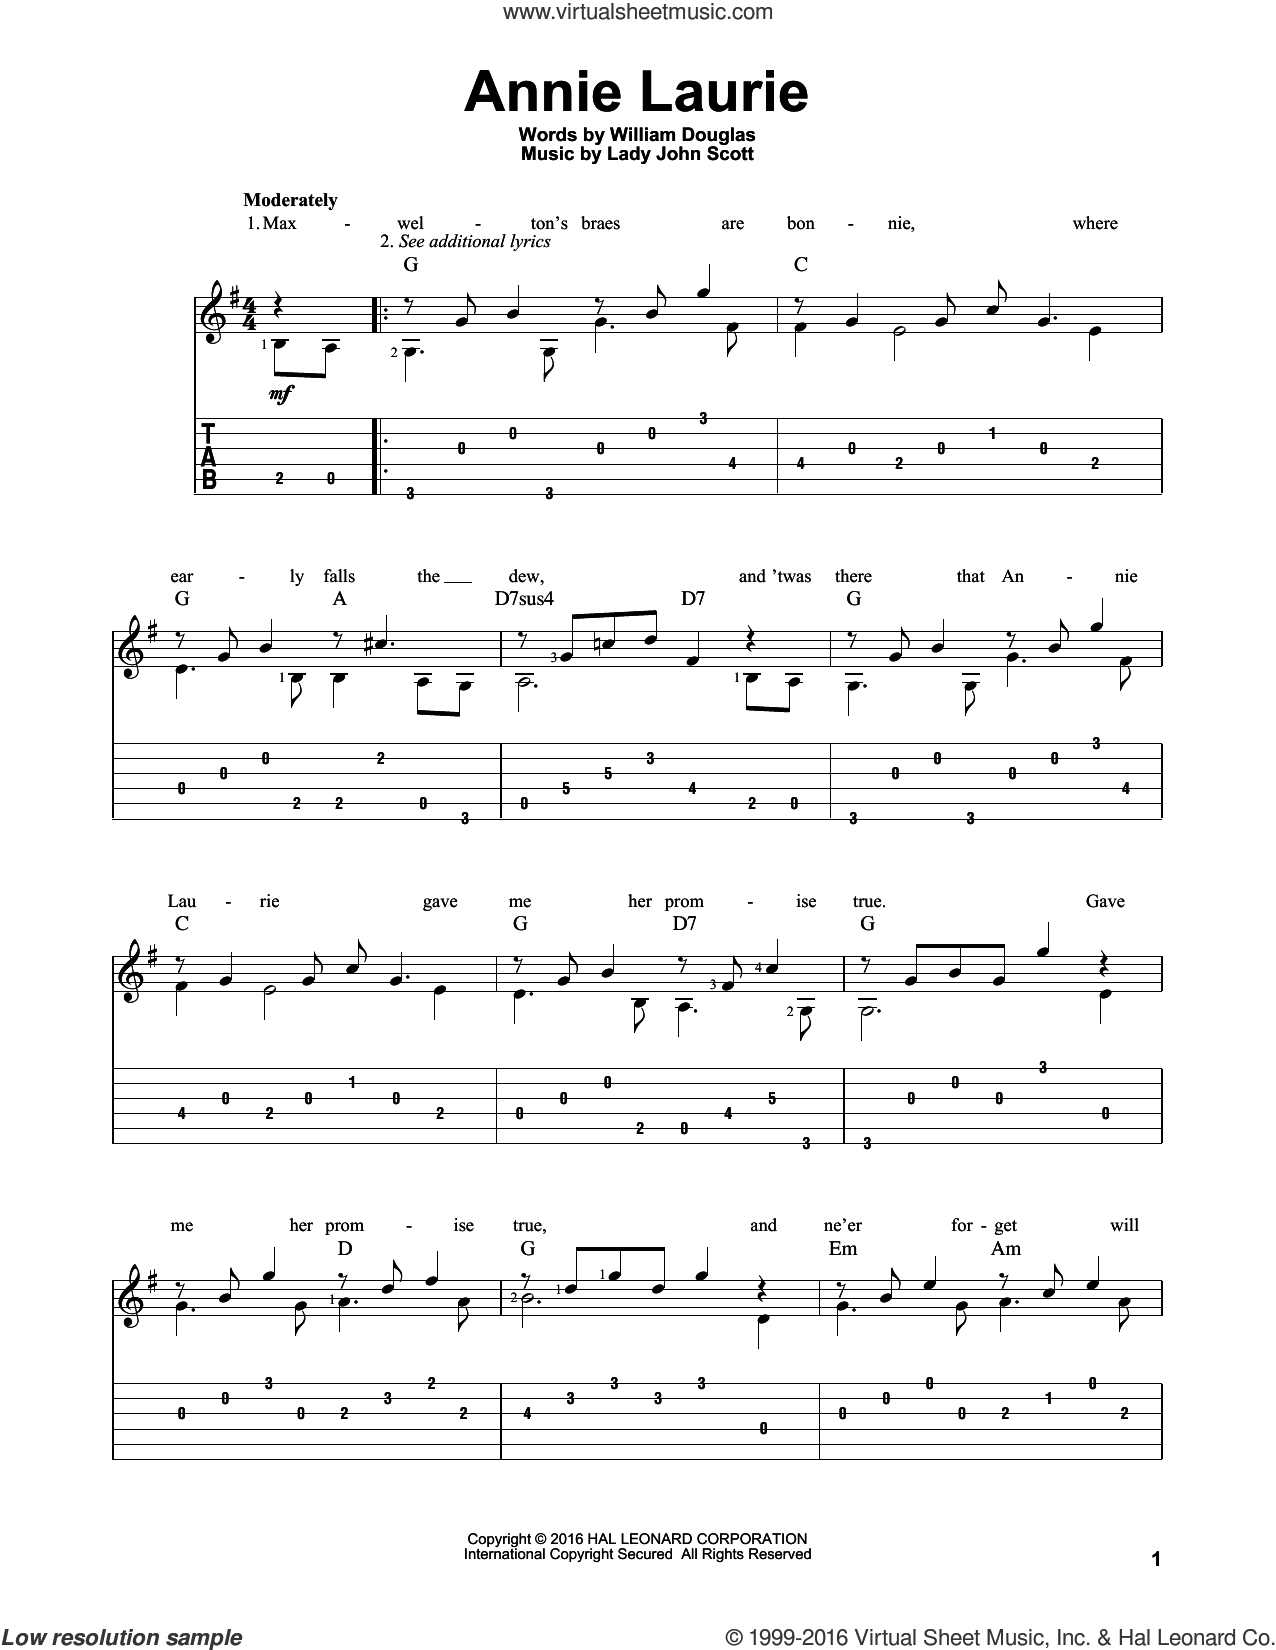 Annie Laurie sheet music for guitar solo by Lady John Scott and William Douglas, intermediate skill level